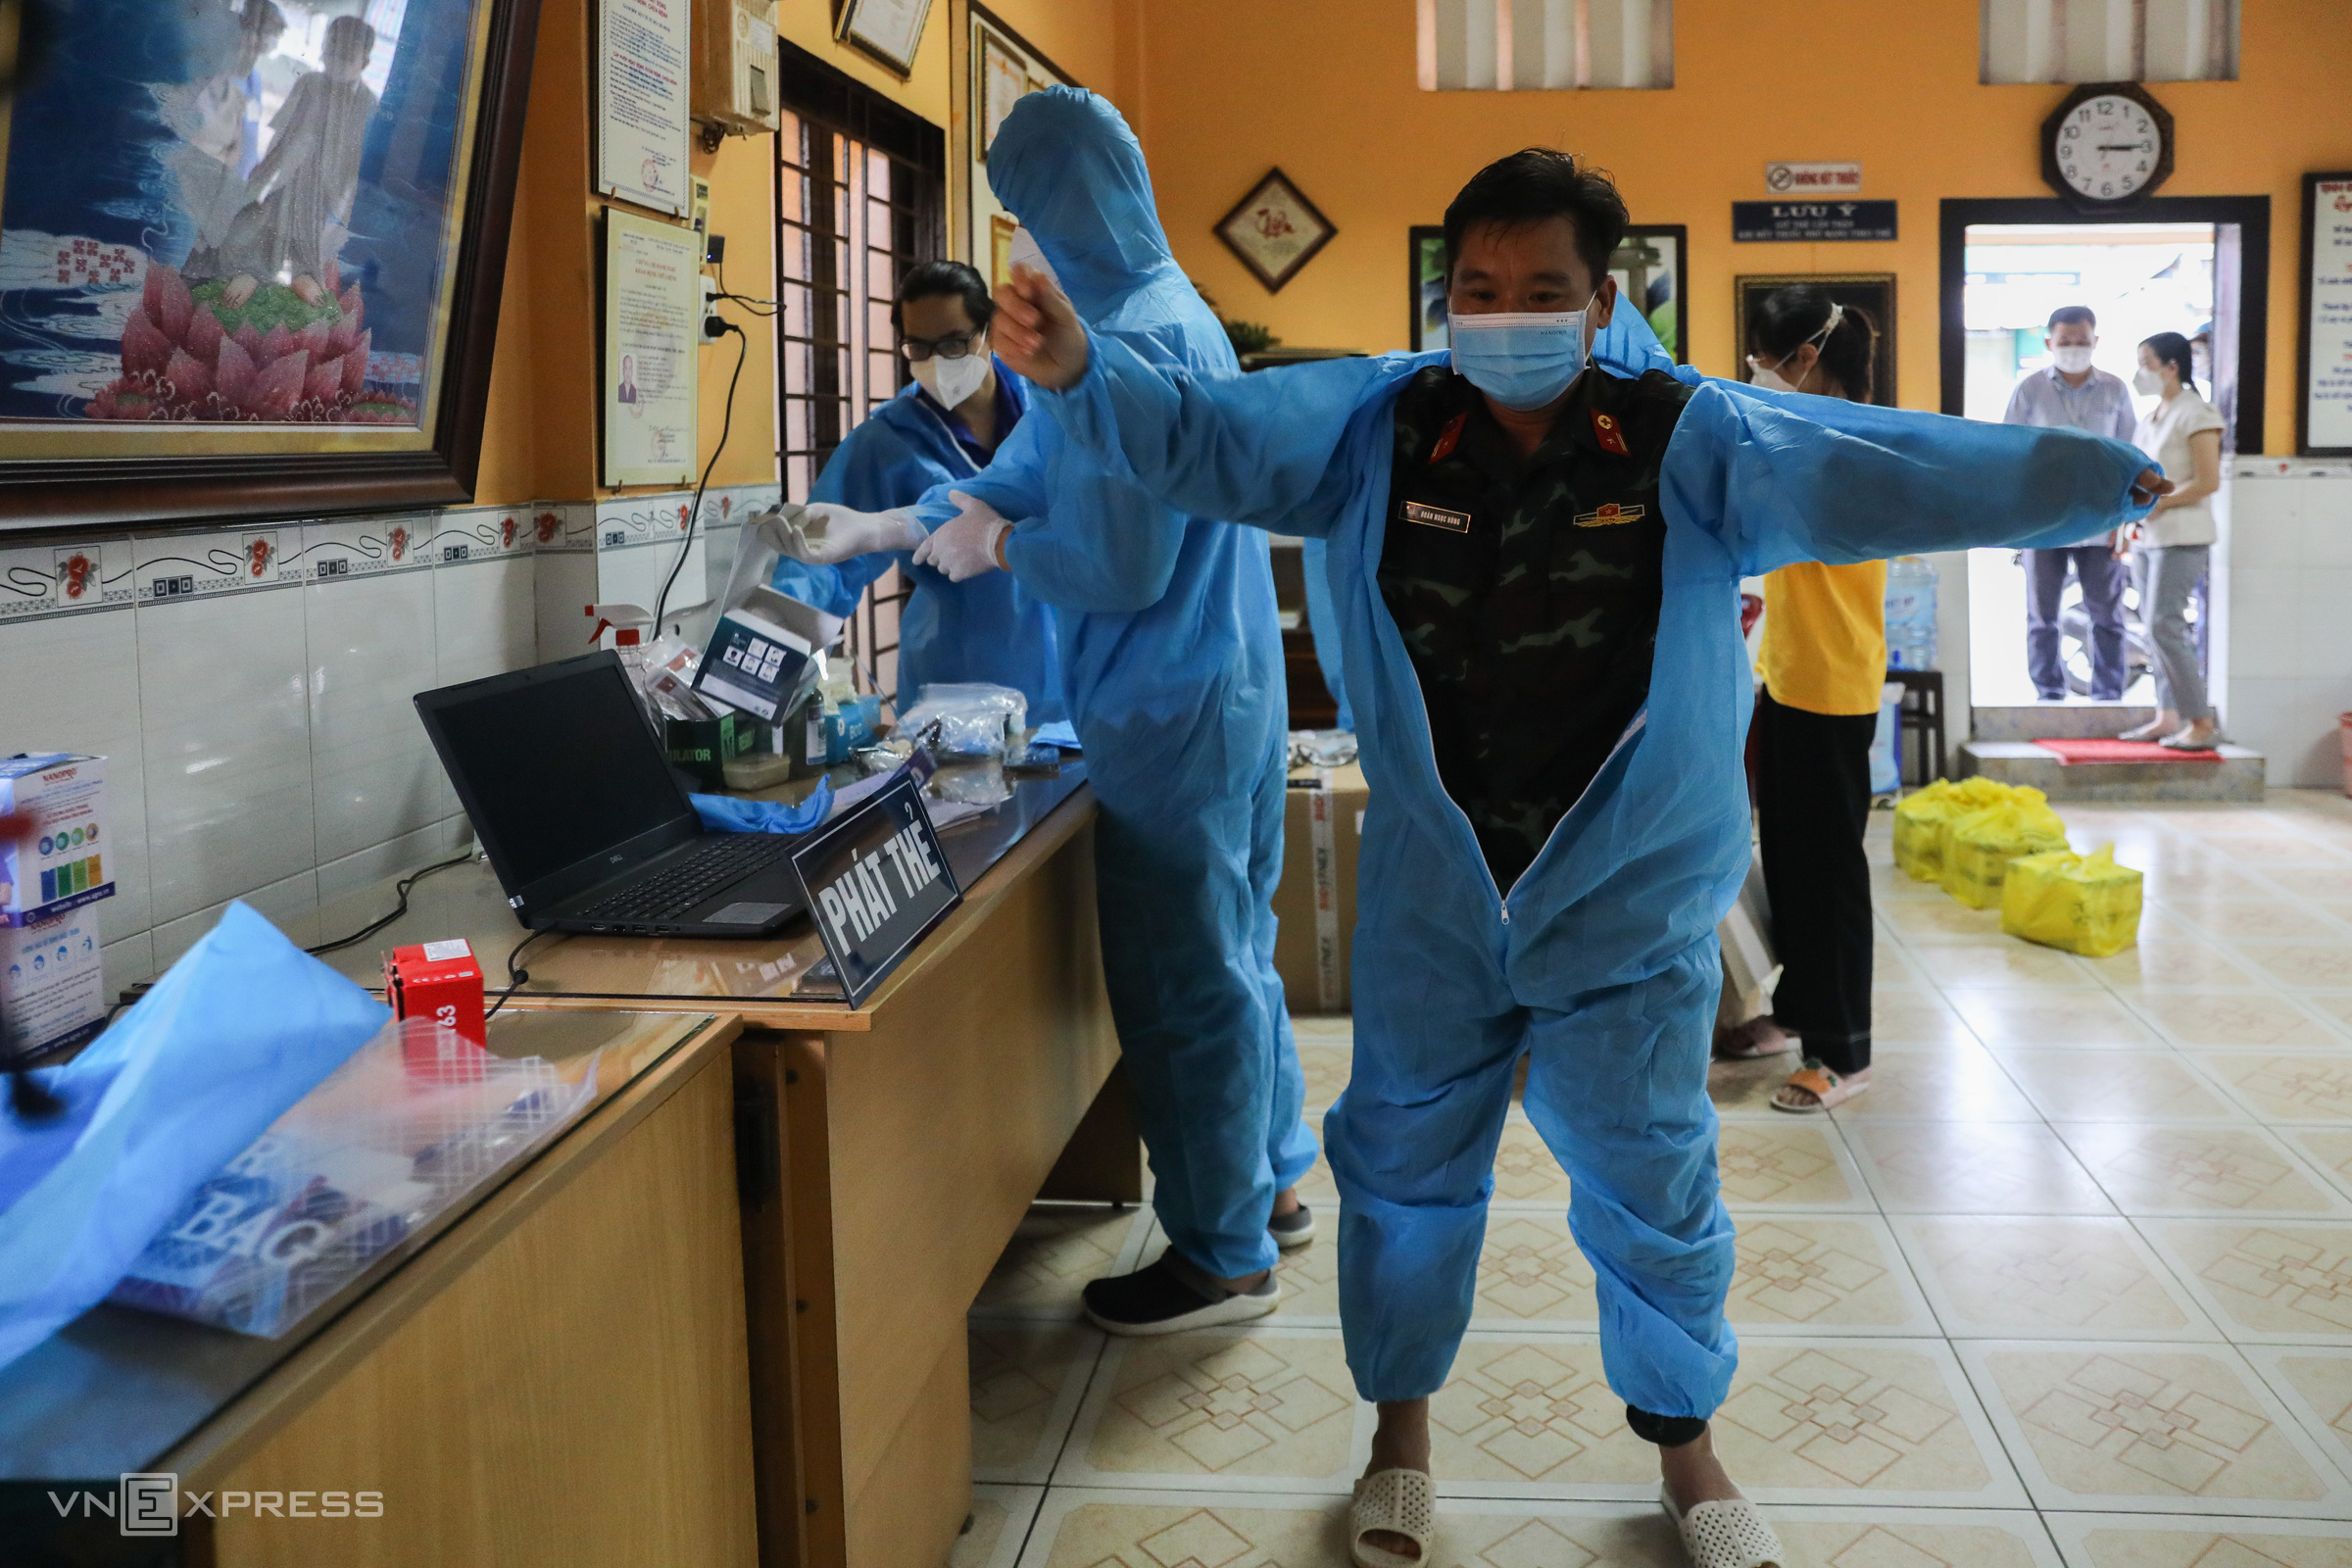 At a mobile medical station in Ward 11 of Binh Thanh District, Doan Ngoc Hung, a doctor from the Vietnam Military Medical University, wears a protective suit on his first day at work in Ho Chi Minh City on Monday.Each mobile medical station has around 4-6 members in charge of management, treating Covid-19 cases at home and vaccinating, among other tasks.